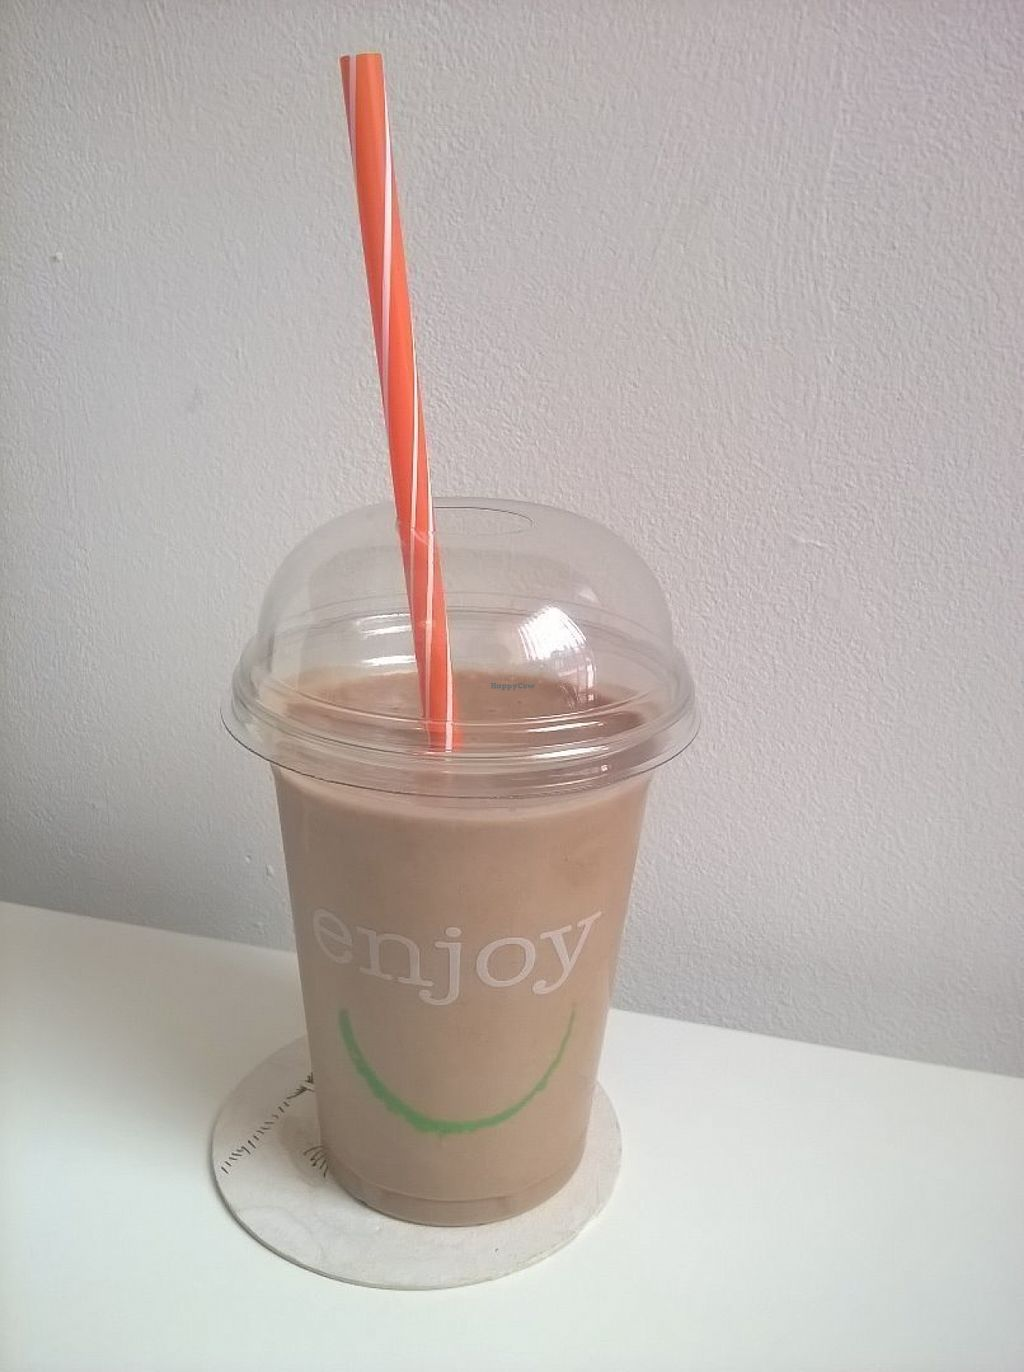 """Photo of CLOSED: Roots Cafe  by <a href=""""/members/profile/deadpledge"""">deadpledge</a> <br/>Pick me up smoothie <br/> July 18, 2016  - <a href='/contact/abuse/image/72911/160725'>Report</a>"""